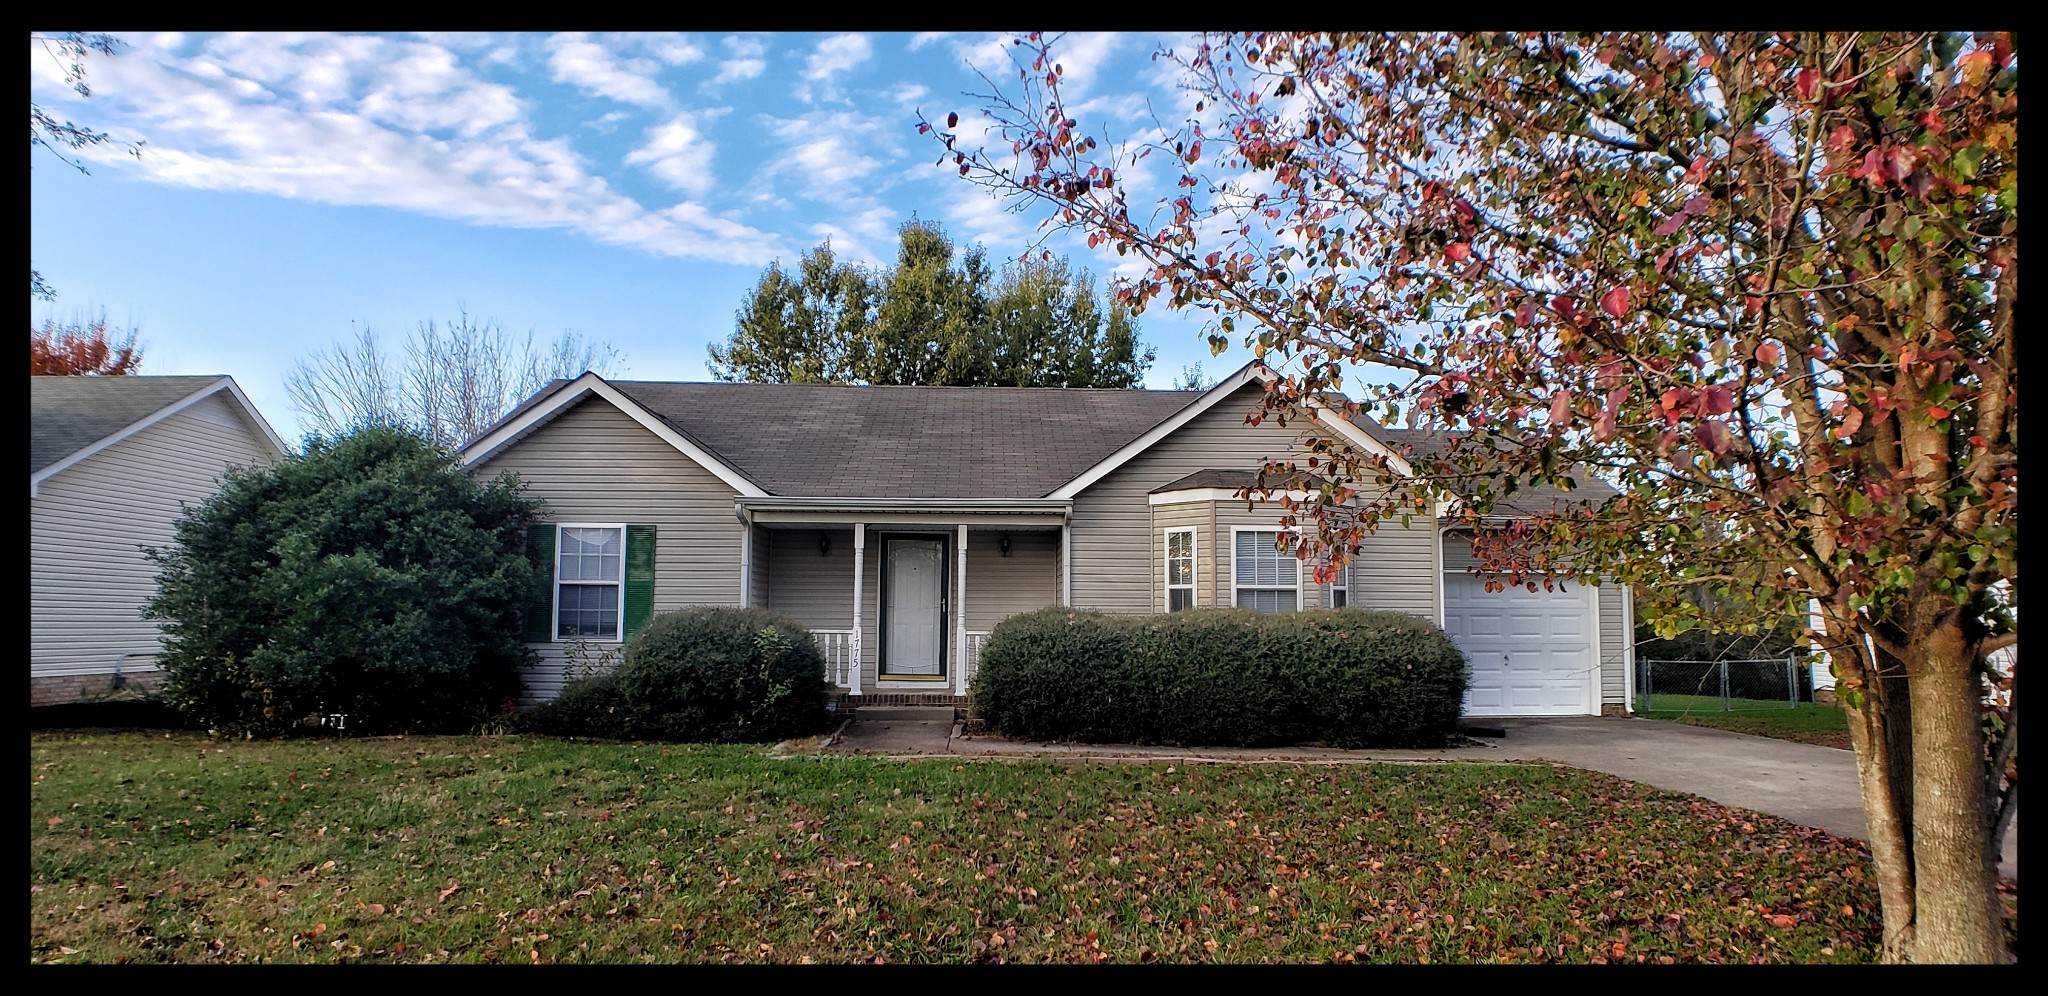 1775 Cabana Dr Property Photo - Clarksville, TN real estate listing